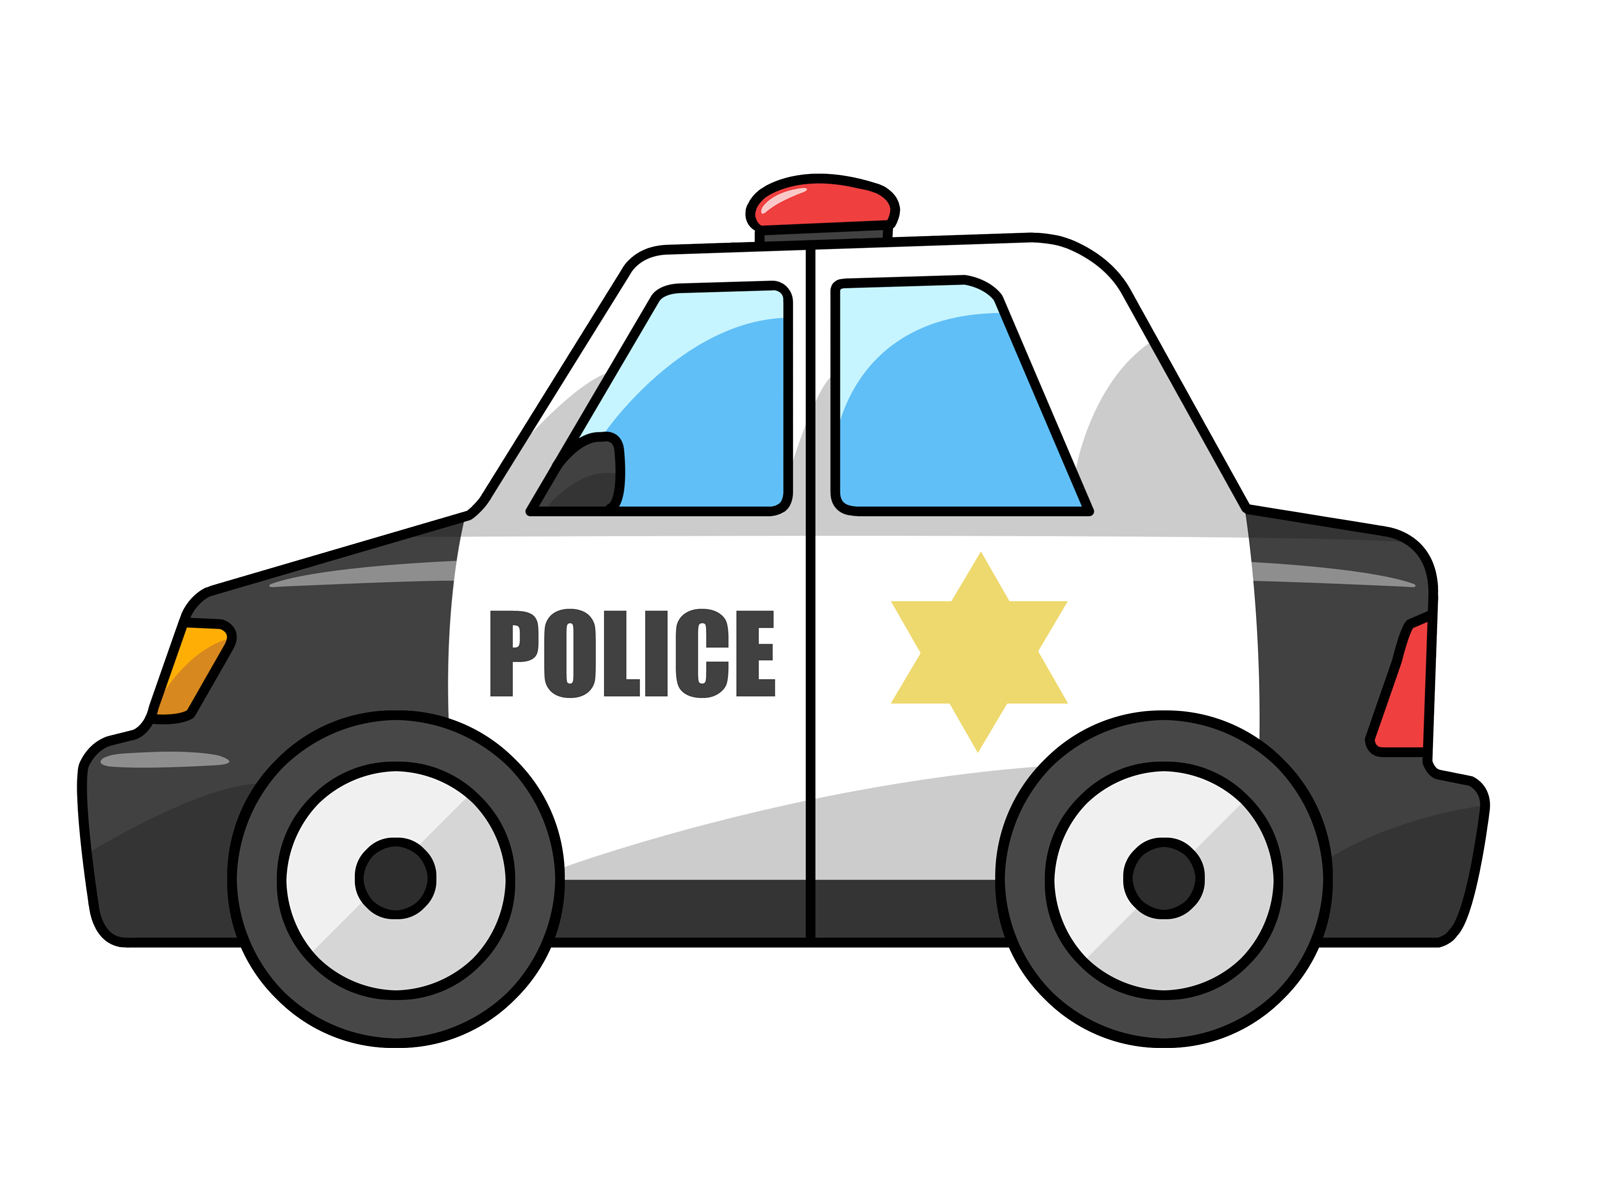 Police Car Image Free Download Best Police Car Image On Clipartmag Com